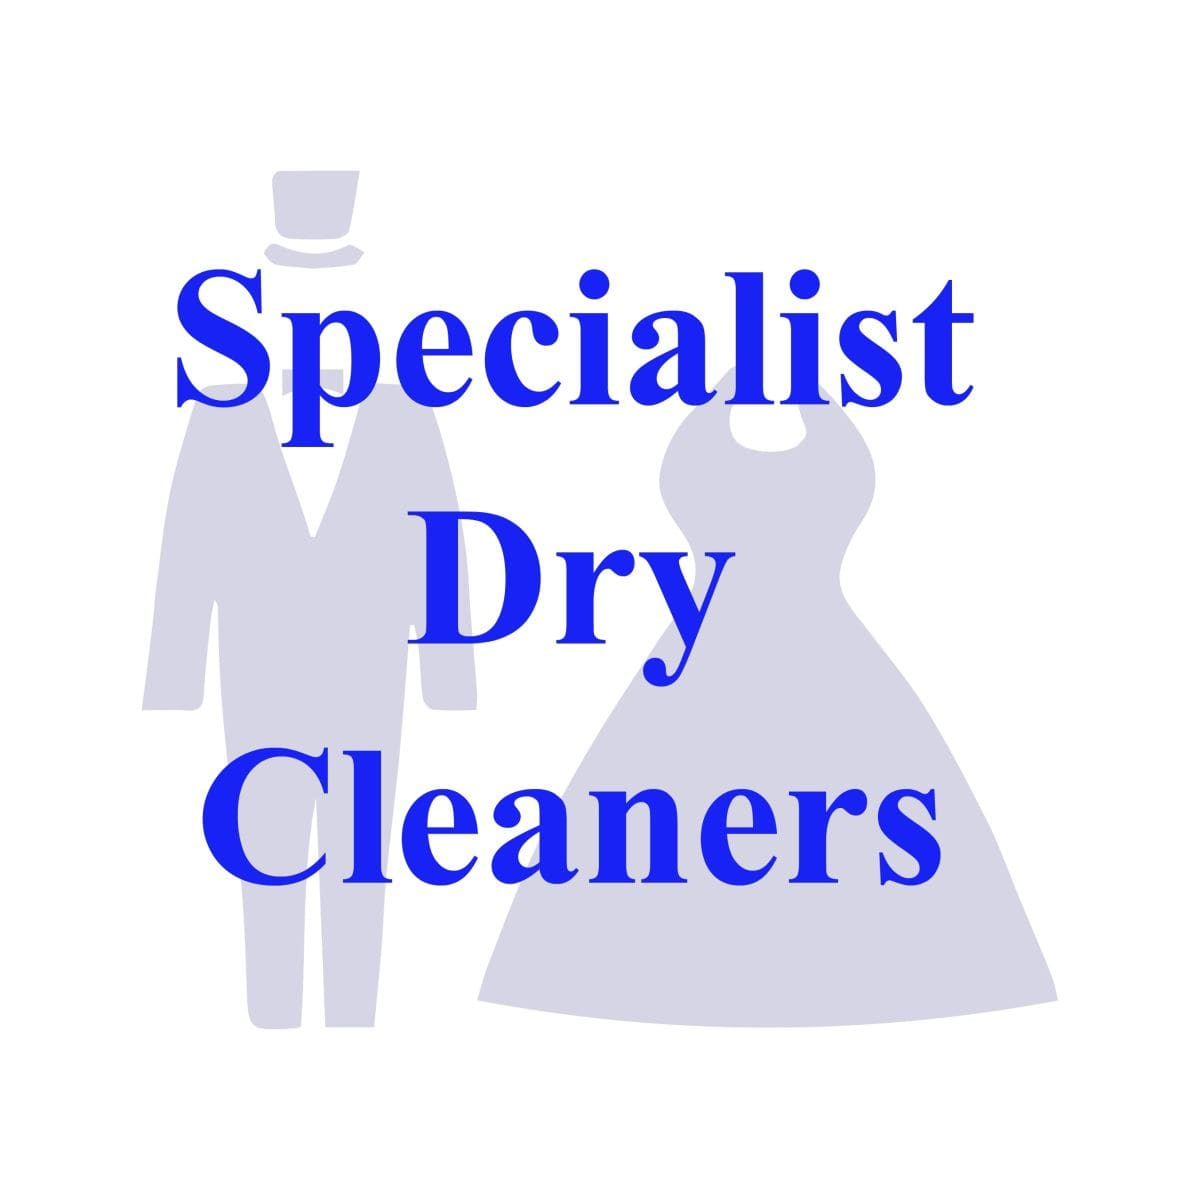 Specialist dry cleaners